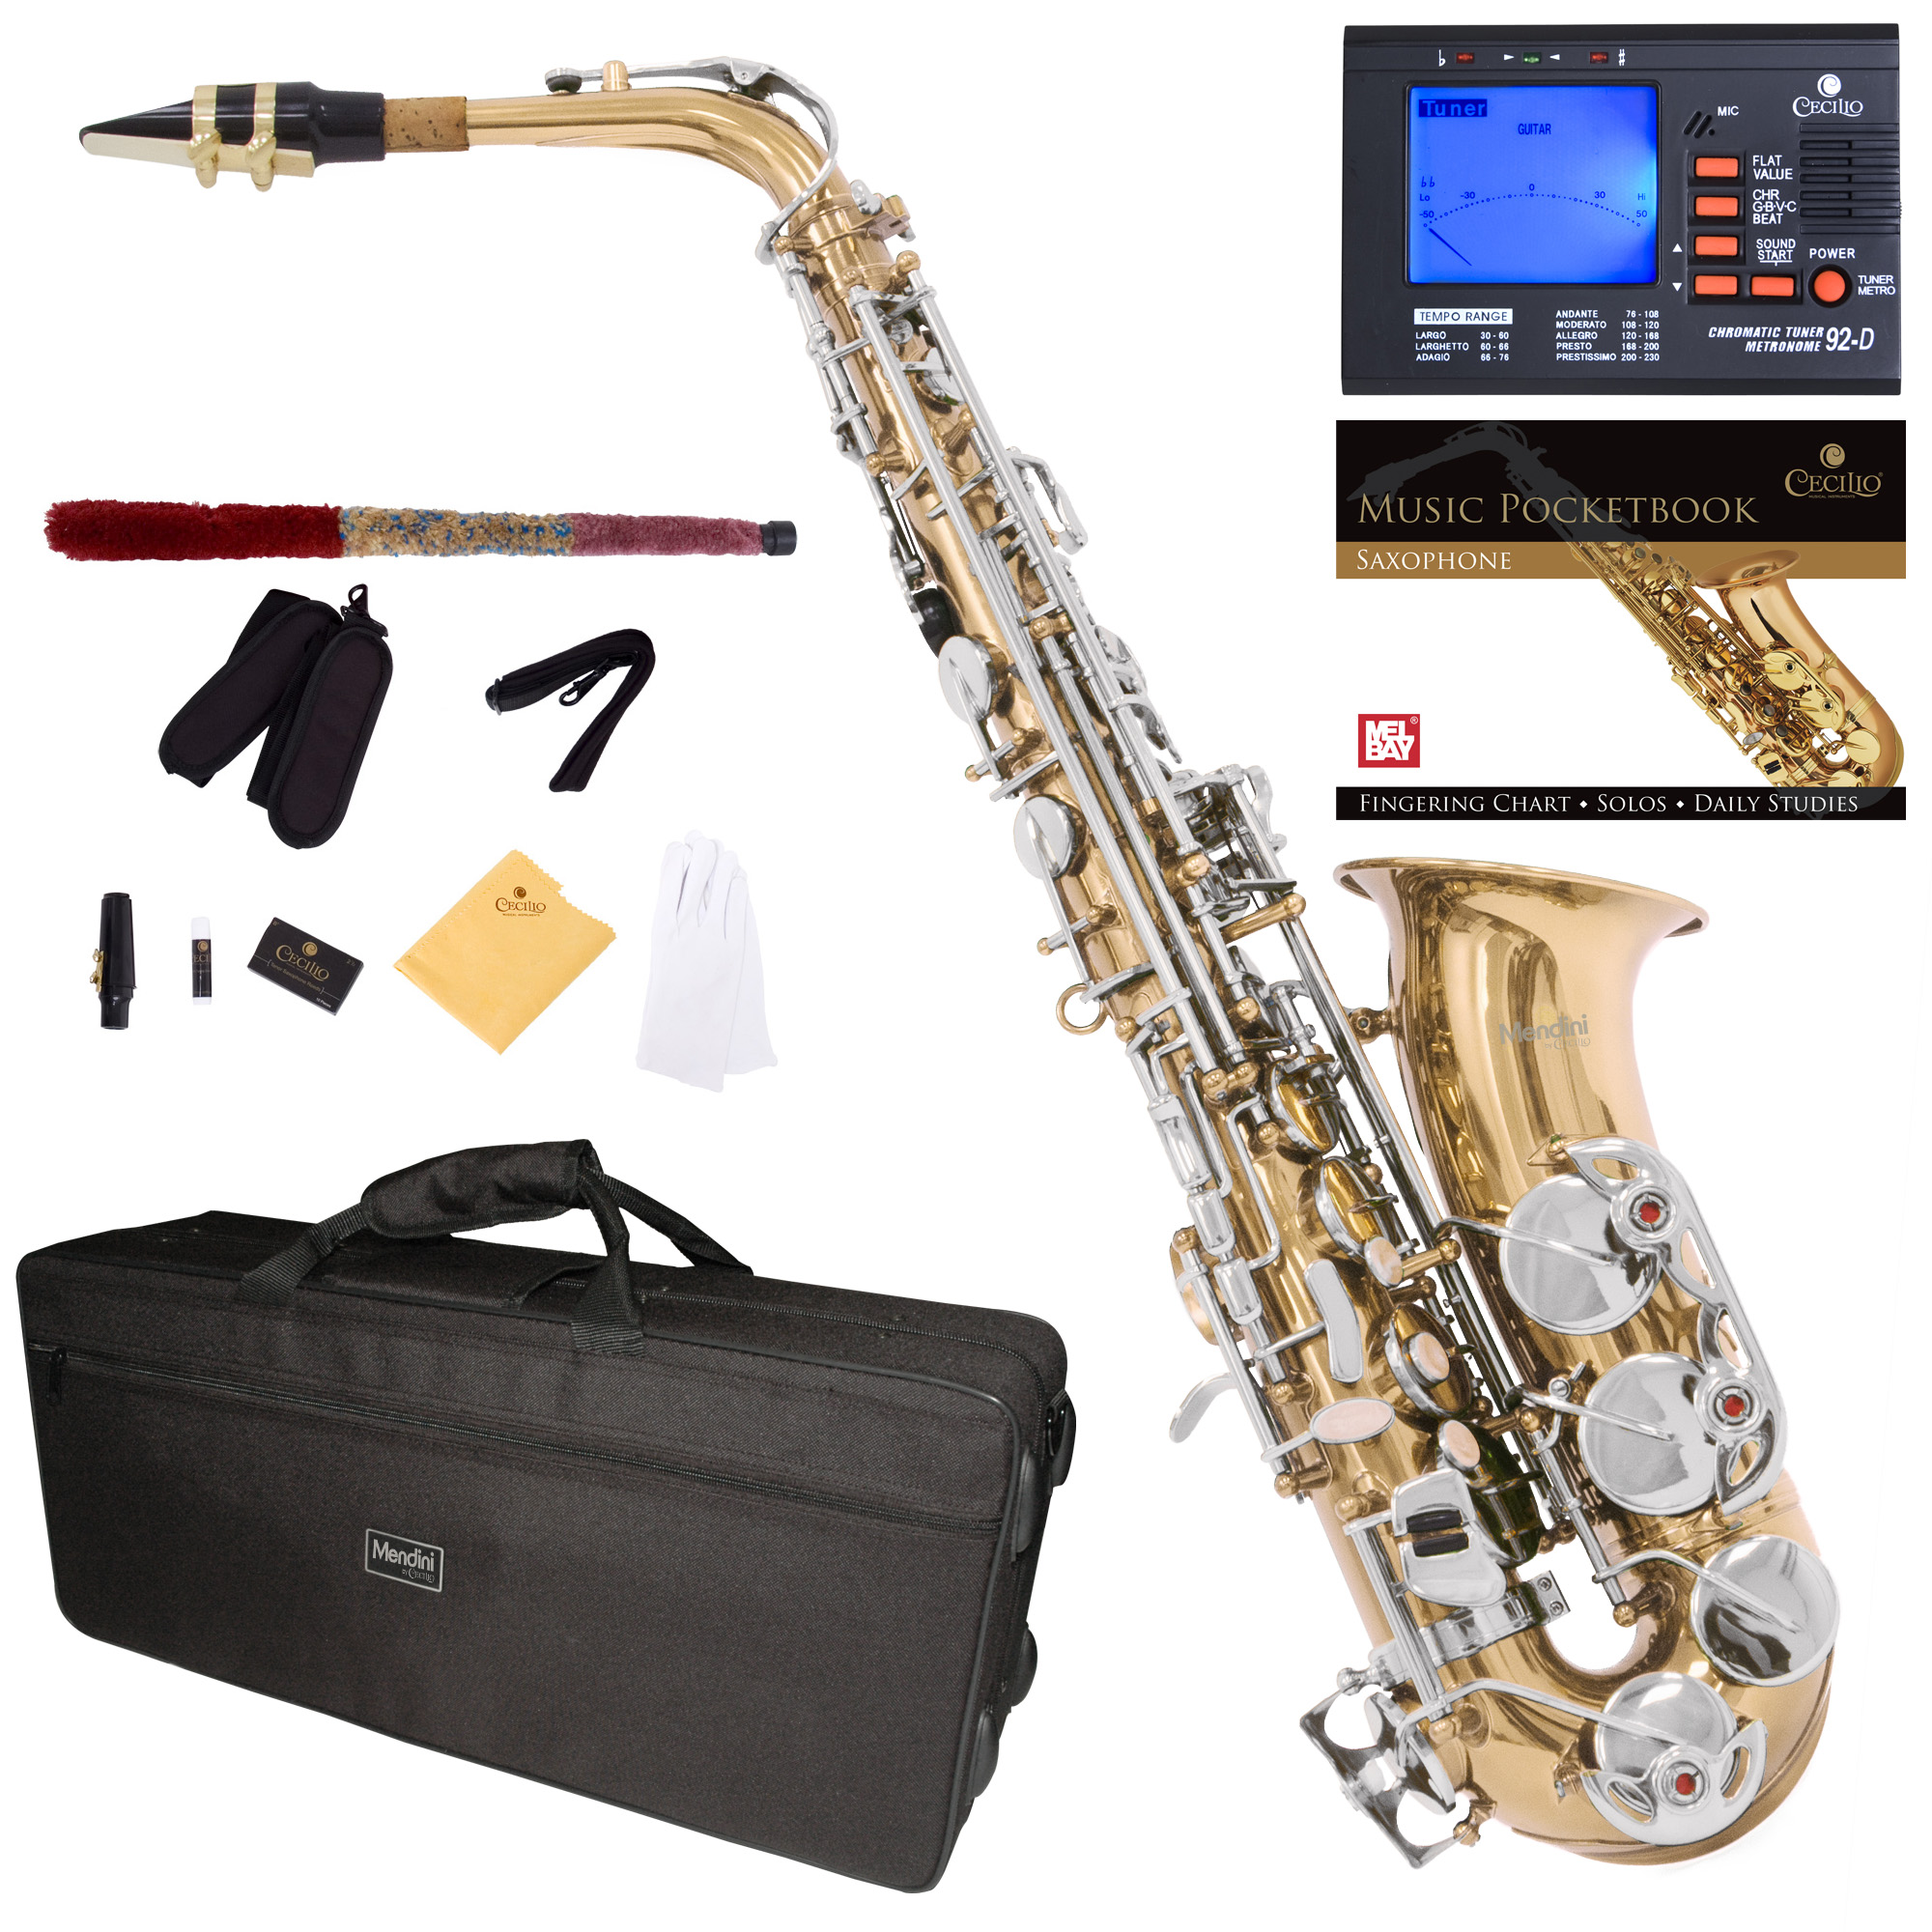 Mendini by Cecilio Eb Alto Sax w/Tuner, Case, Mouthpiece, 10 Reeds, Pocketbook and 1 Year Warranty, MAS-LN Gold Lacquer Body with Nickel Plated Key E Flat Saxophone